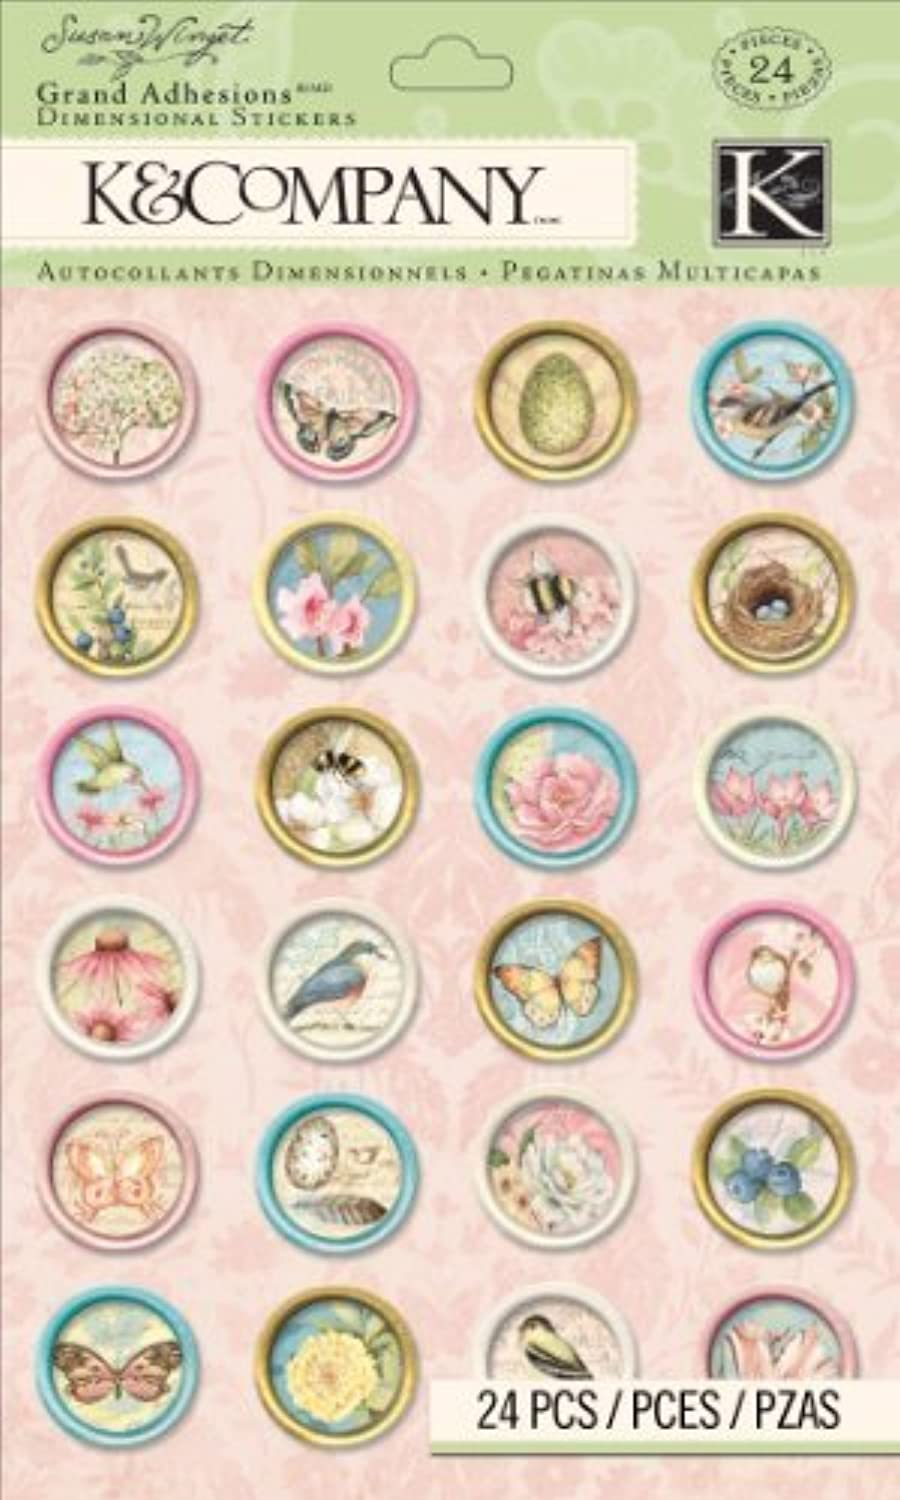 K&Company Icon Grand Adhesions Sticker by Susan Winget by K&Company K&Company K&Company B0149HD7YU | Haltbar